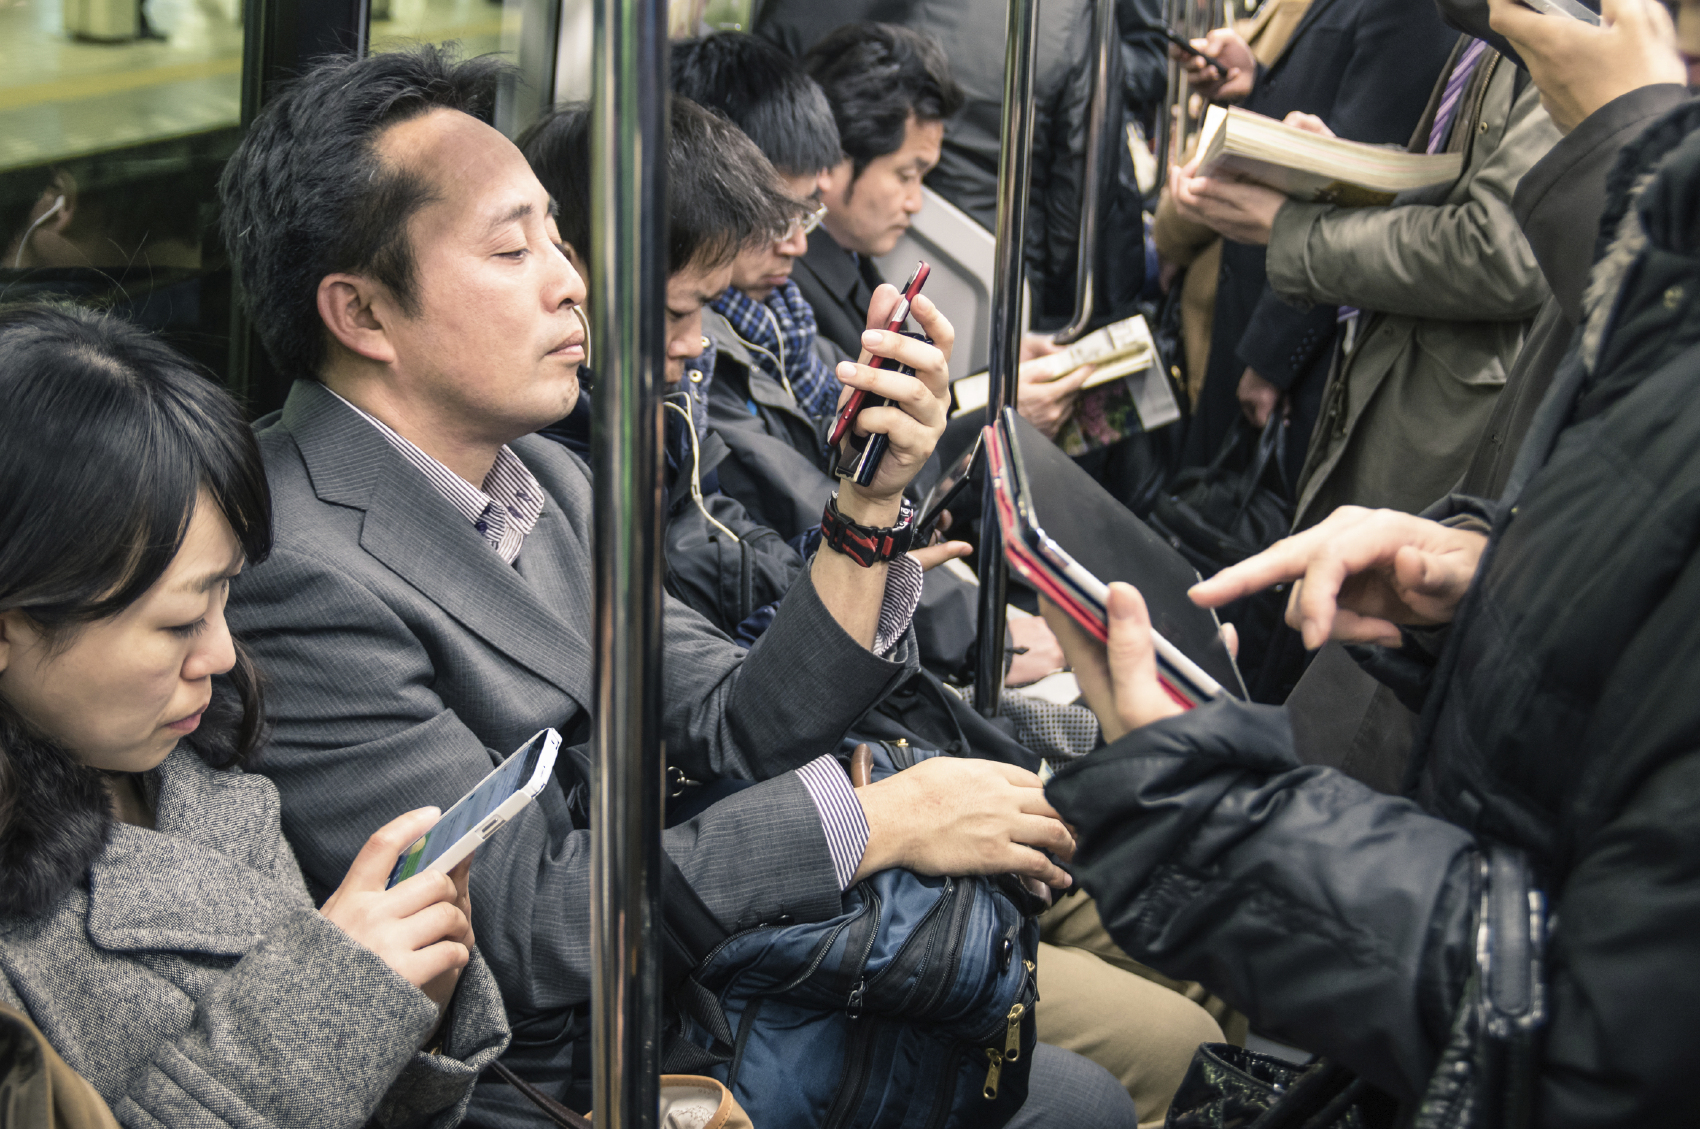 TOKYO -MARCH 2, 2015: people busy with smartphones and tablets i